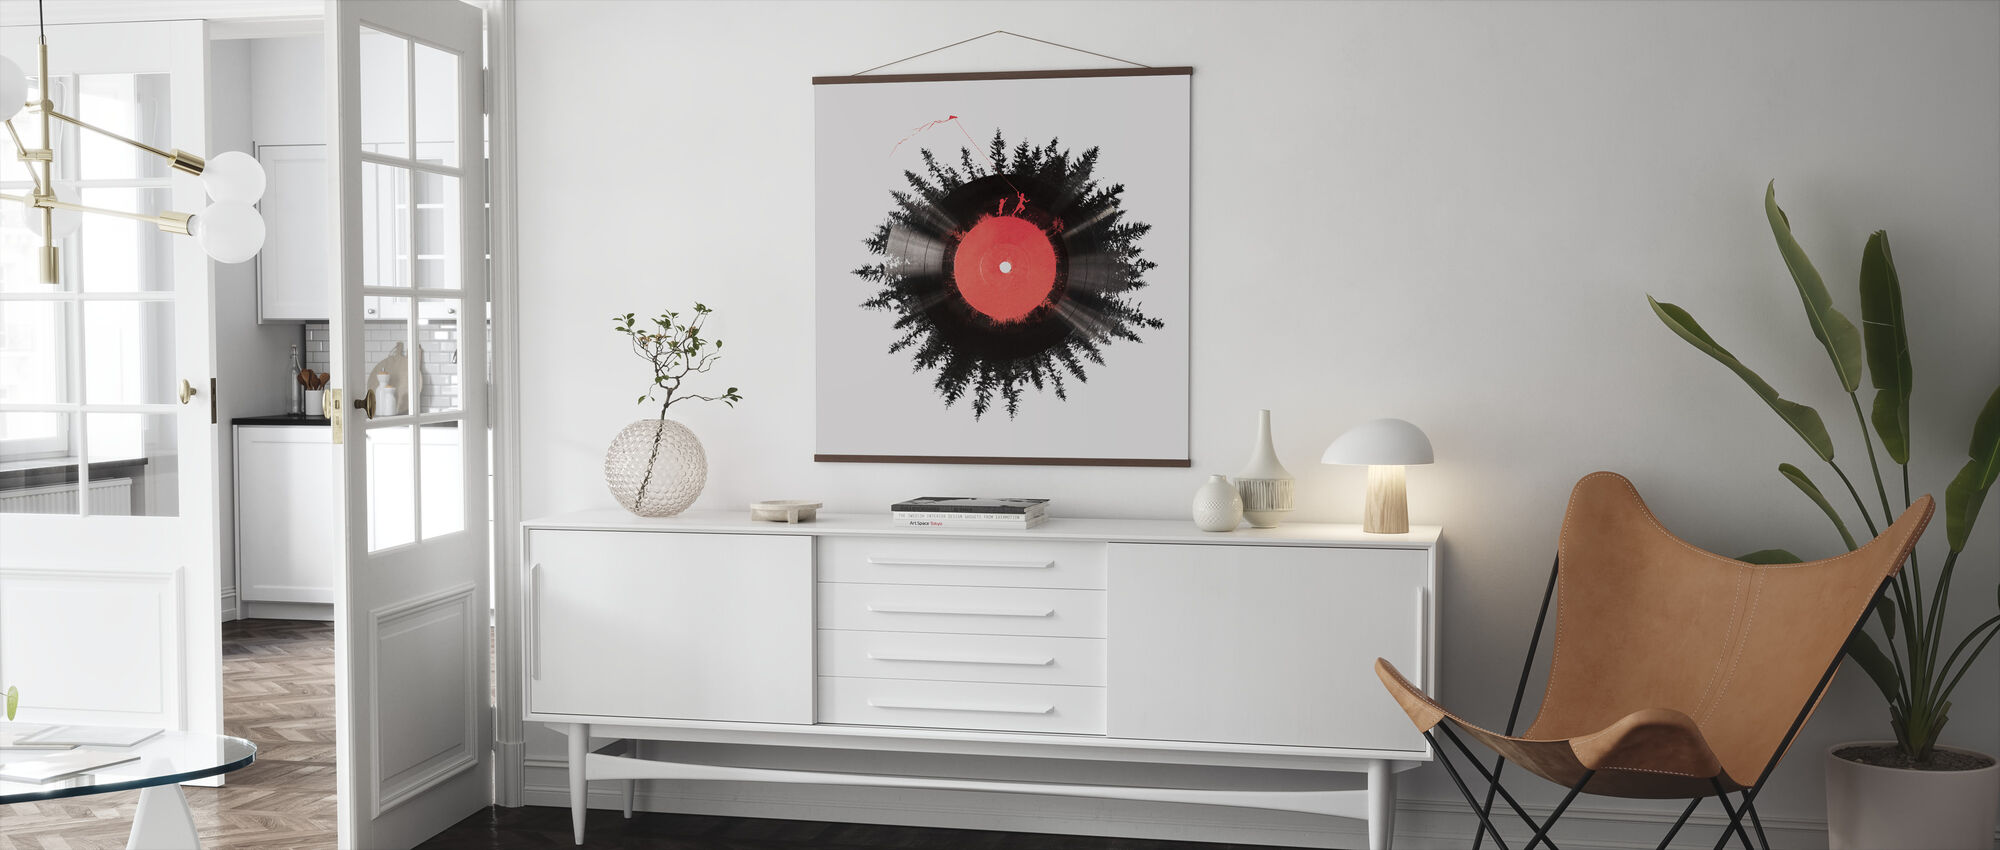 The Vinyl of my Life - Poster - Living Room